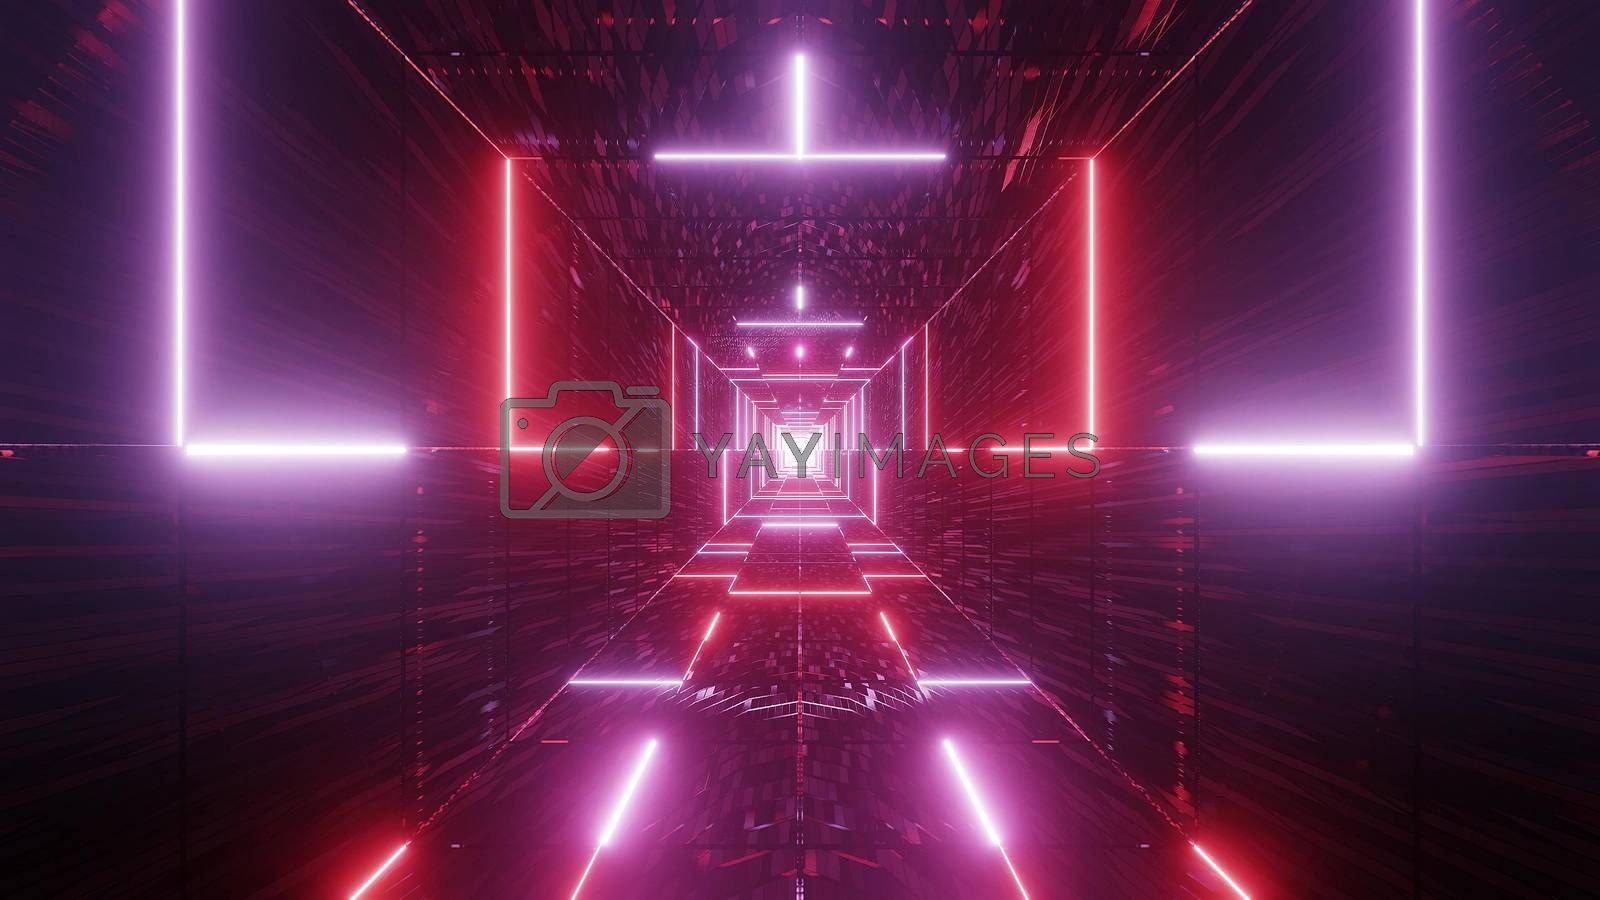 abstract glowing wire-frame artwork graphic design with brick texture background 3d illustration wallpaper, highly abstract 3d rendering art